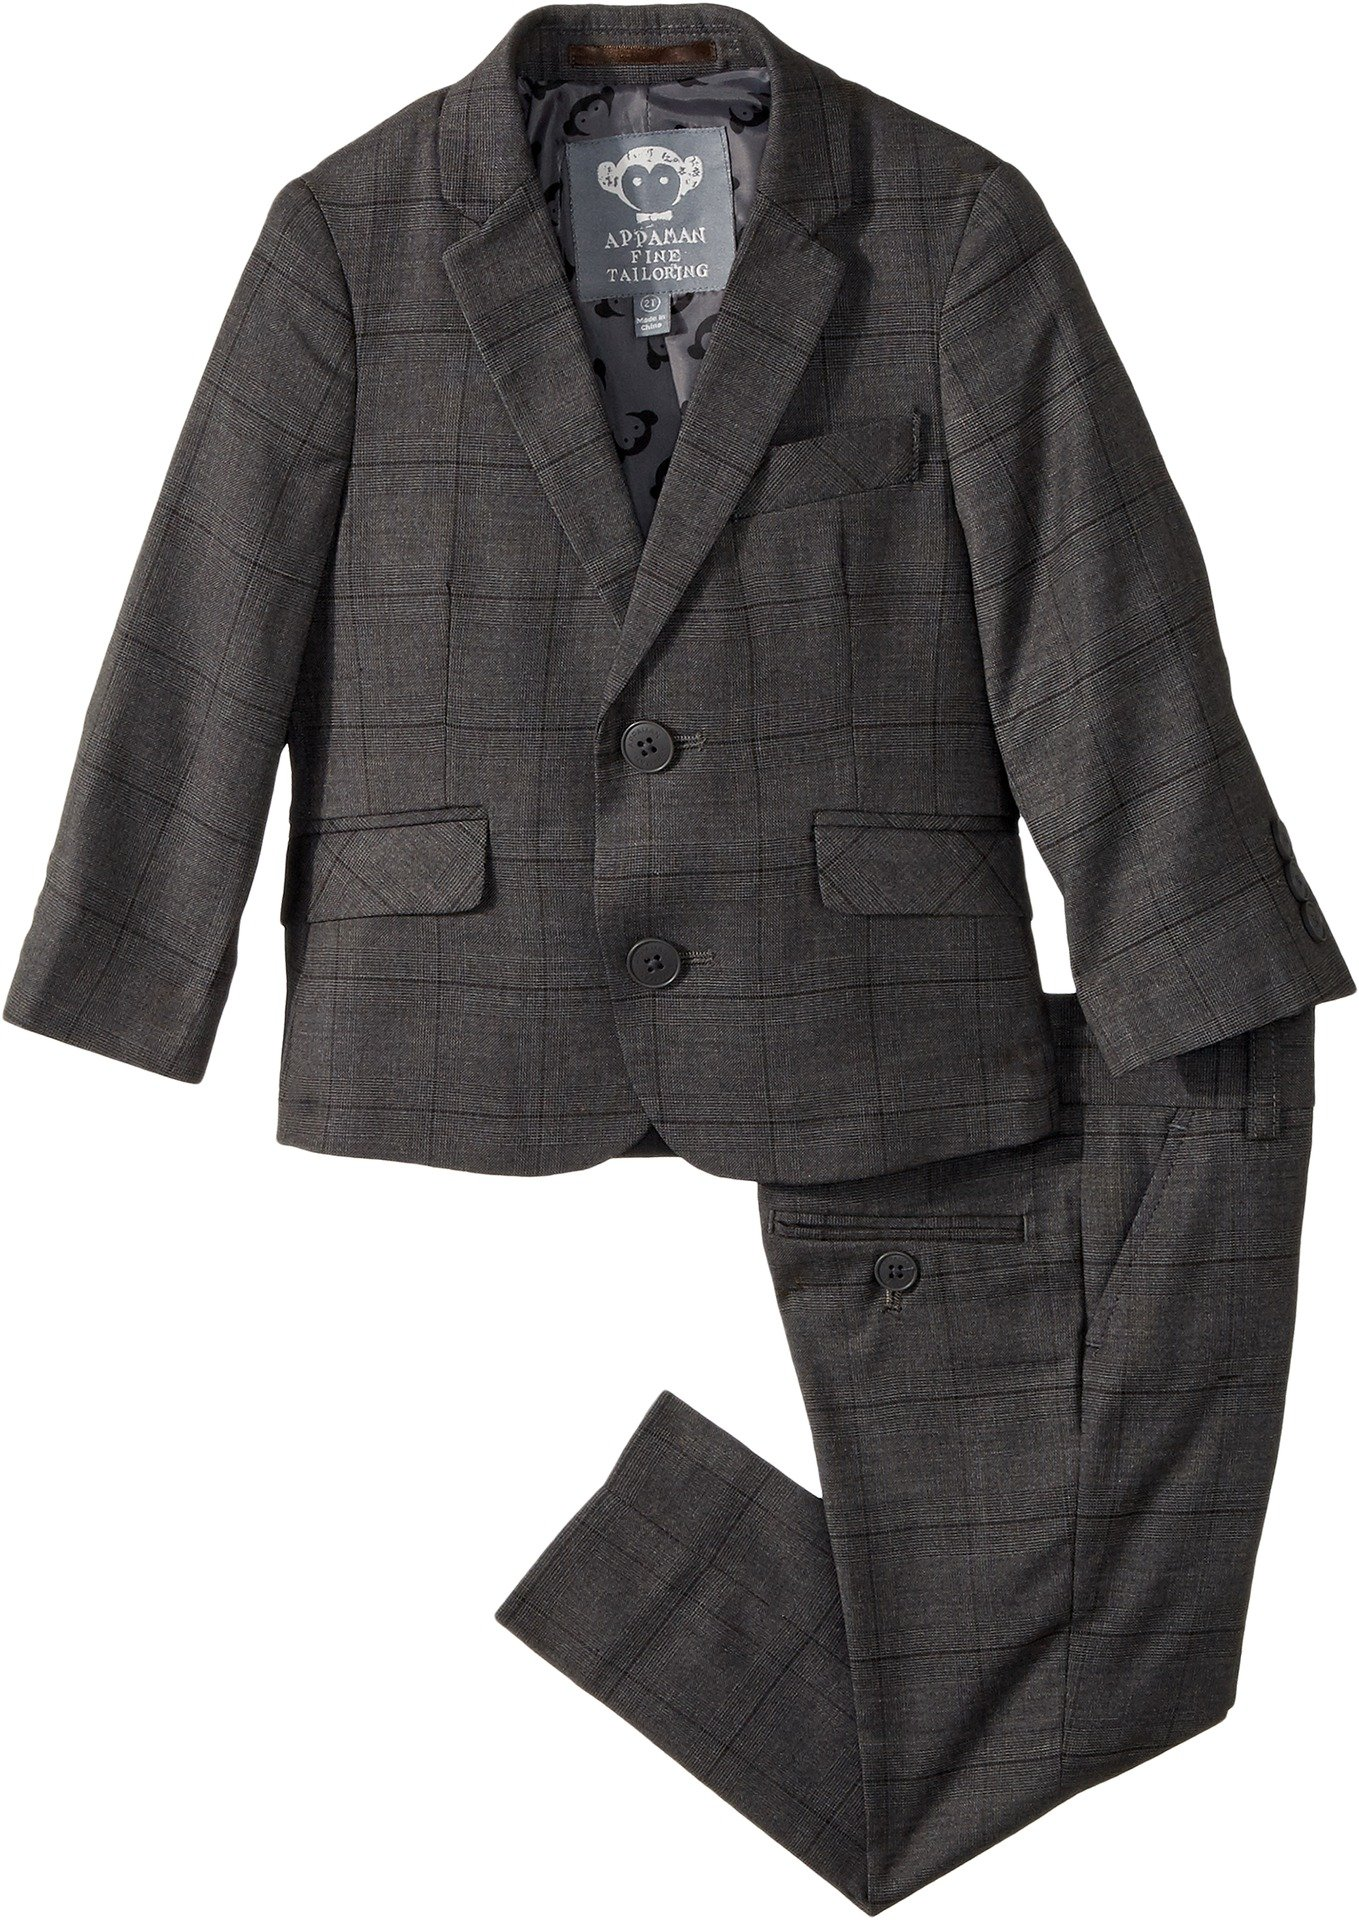 Appaman Kids Baby Boy's Two-Piece Mod Suit (Toddler/Little Kids/Big Kids) Charcoal Wales Check 2T